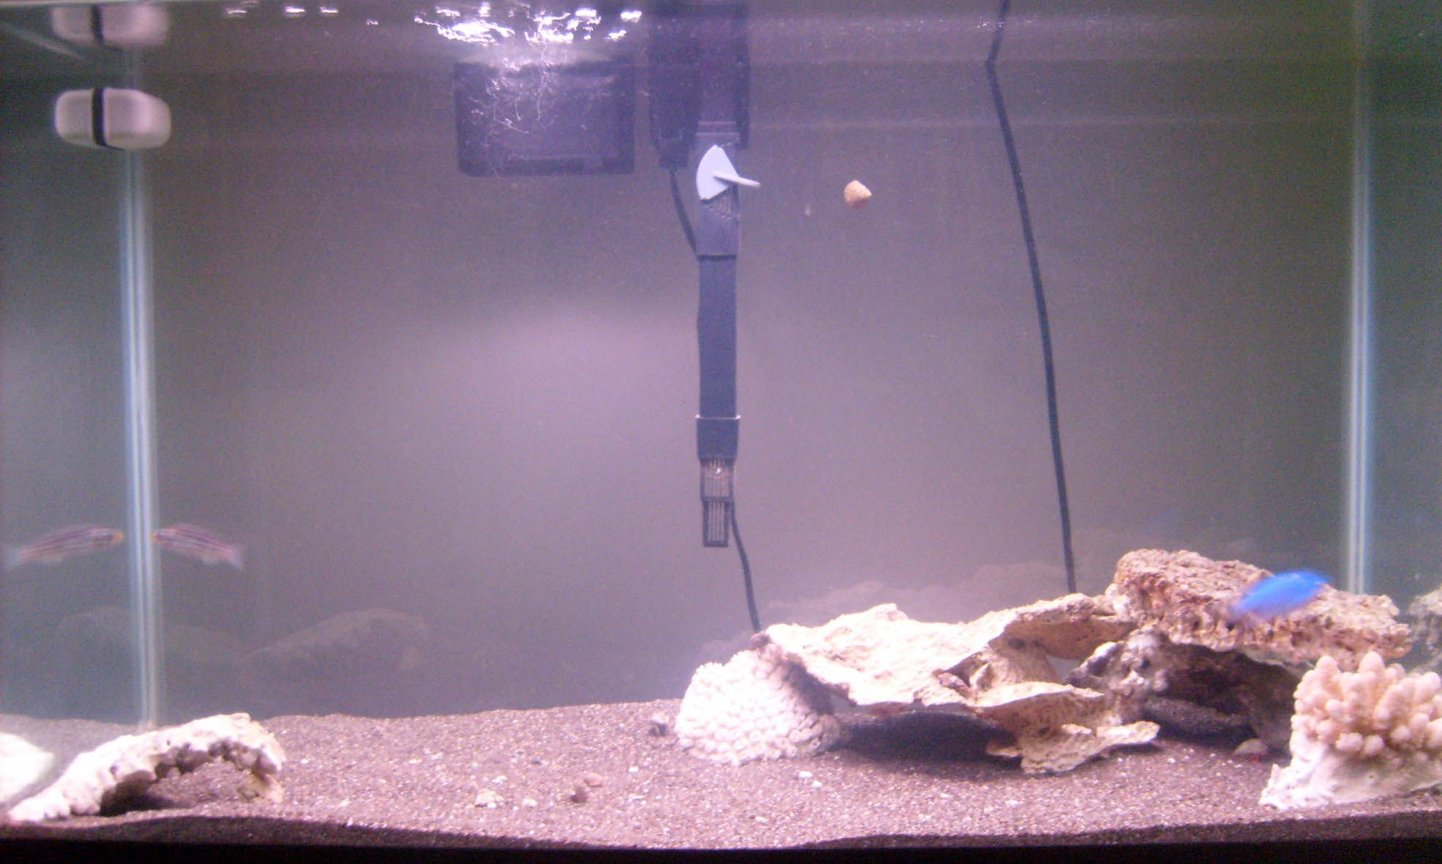 10 gallons freshwater fish tank (mostly fish and non-living decorations) - new 30G transferred from a 10G